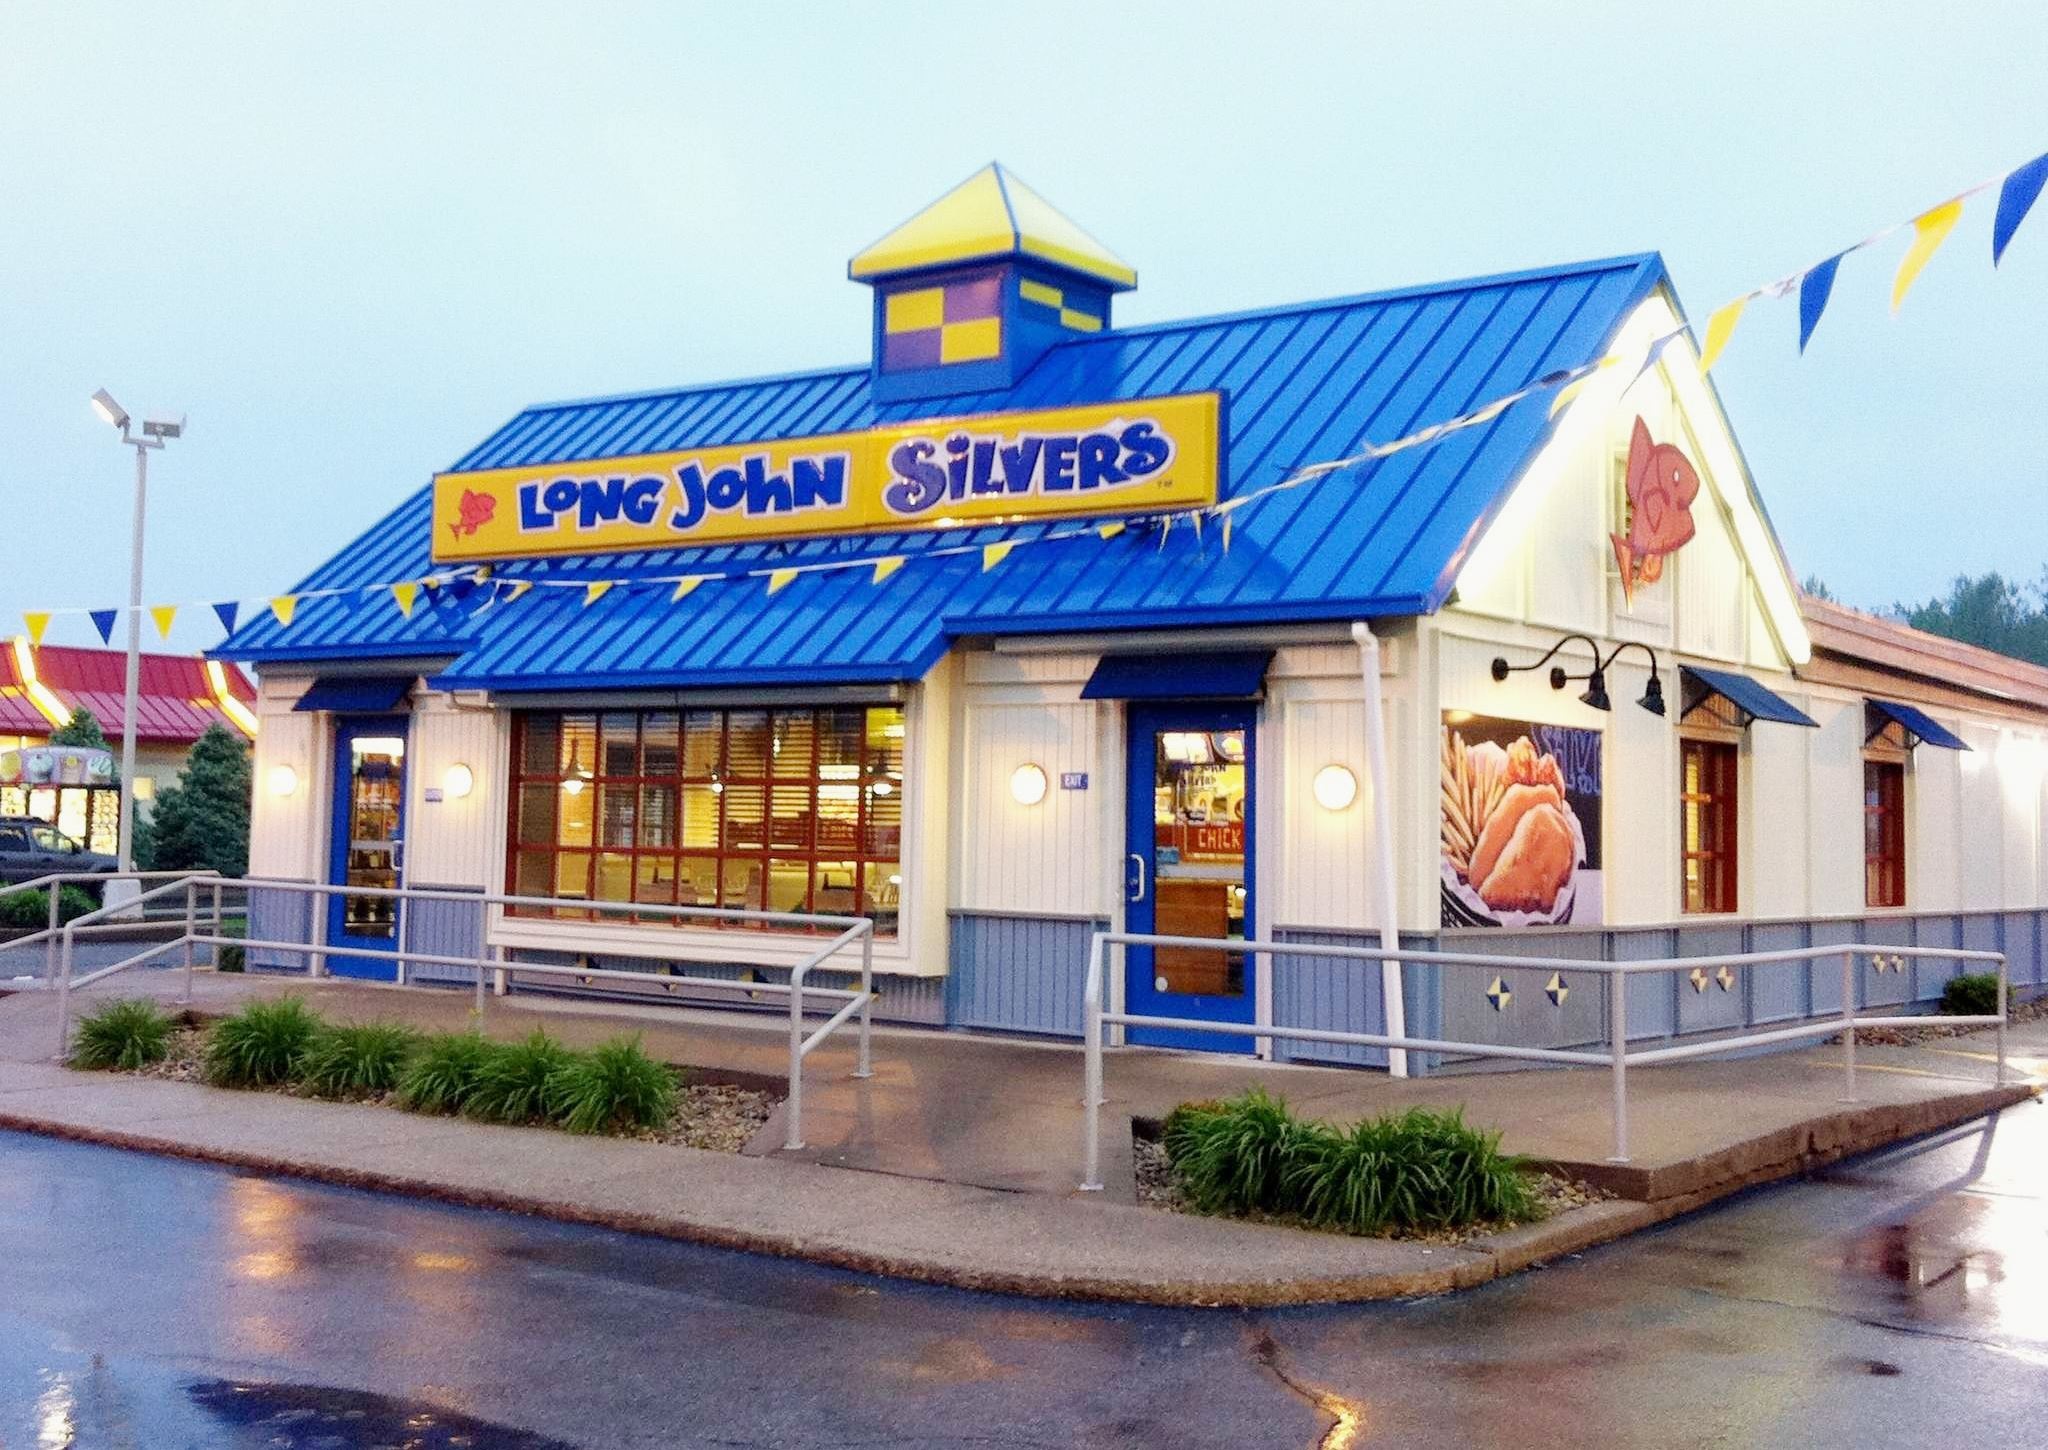 Sep 07,  · Set sail for seafood savings with Long John Silver's coupons. Satisfy your craving for clams, shrimp, and whitefish and grab tasty chicken tenders, /5(37).